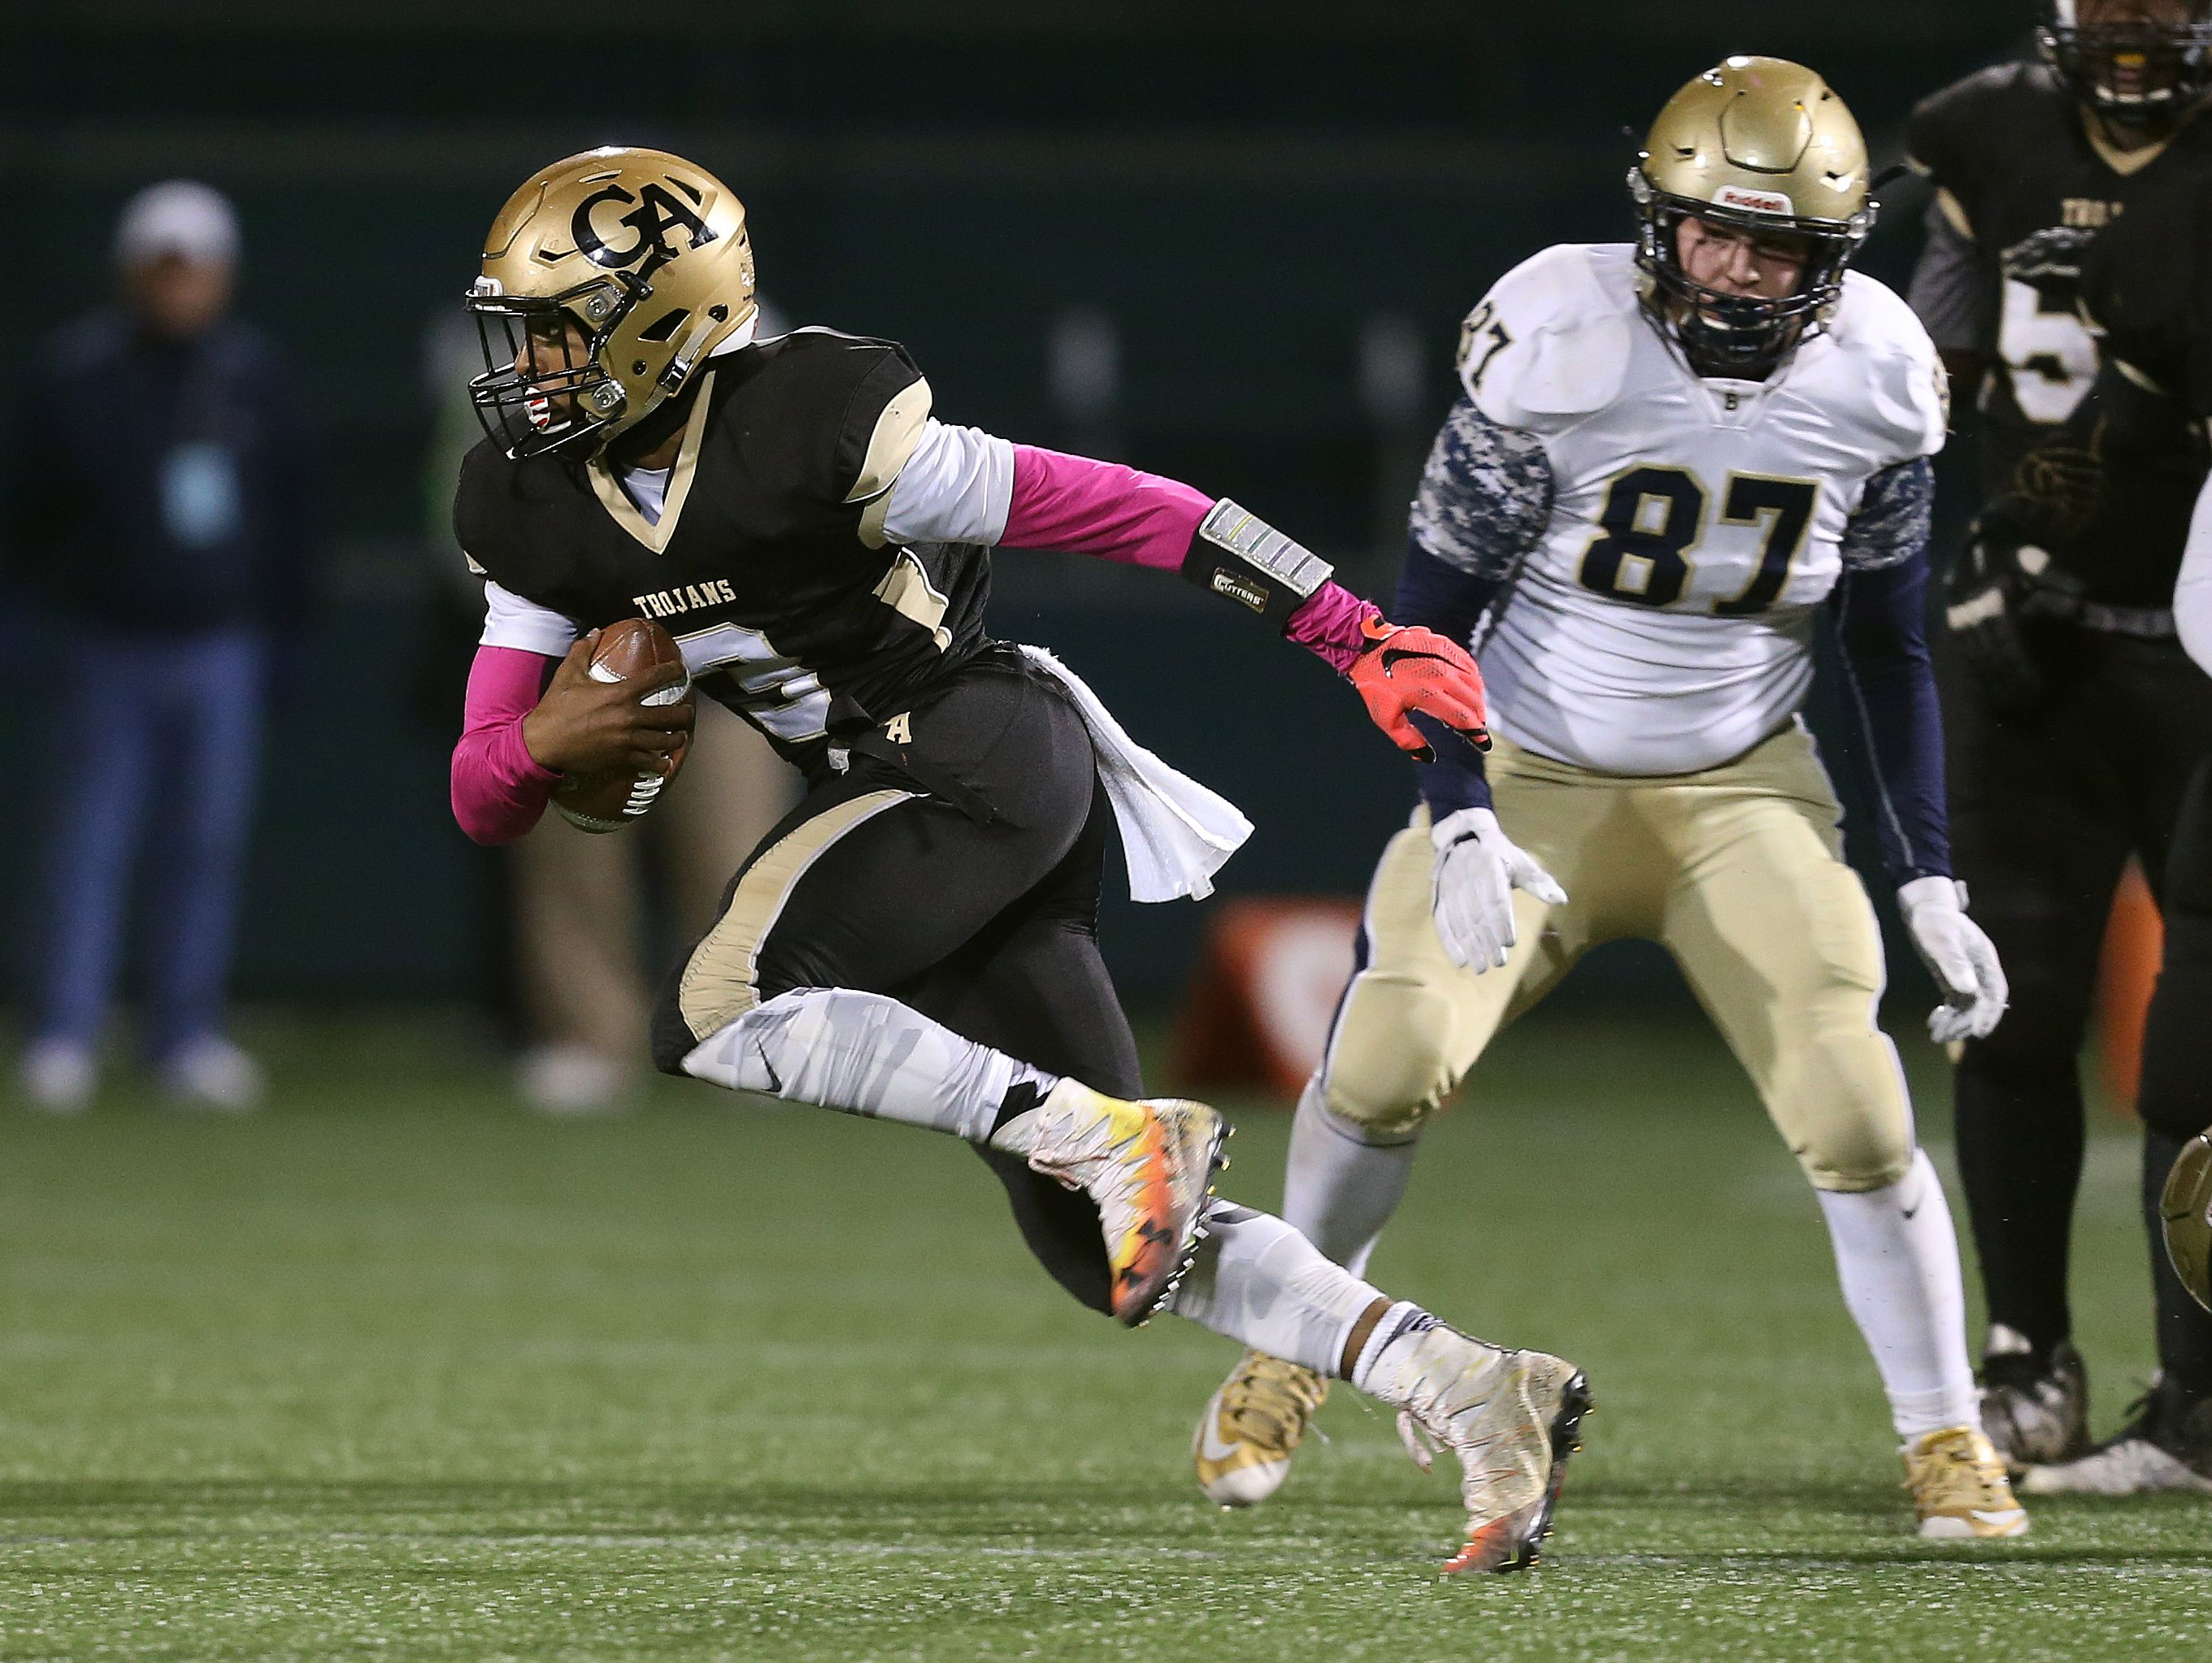 Athena quarterback Ta'von Granison looks for running room out of the pocket.